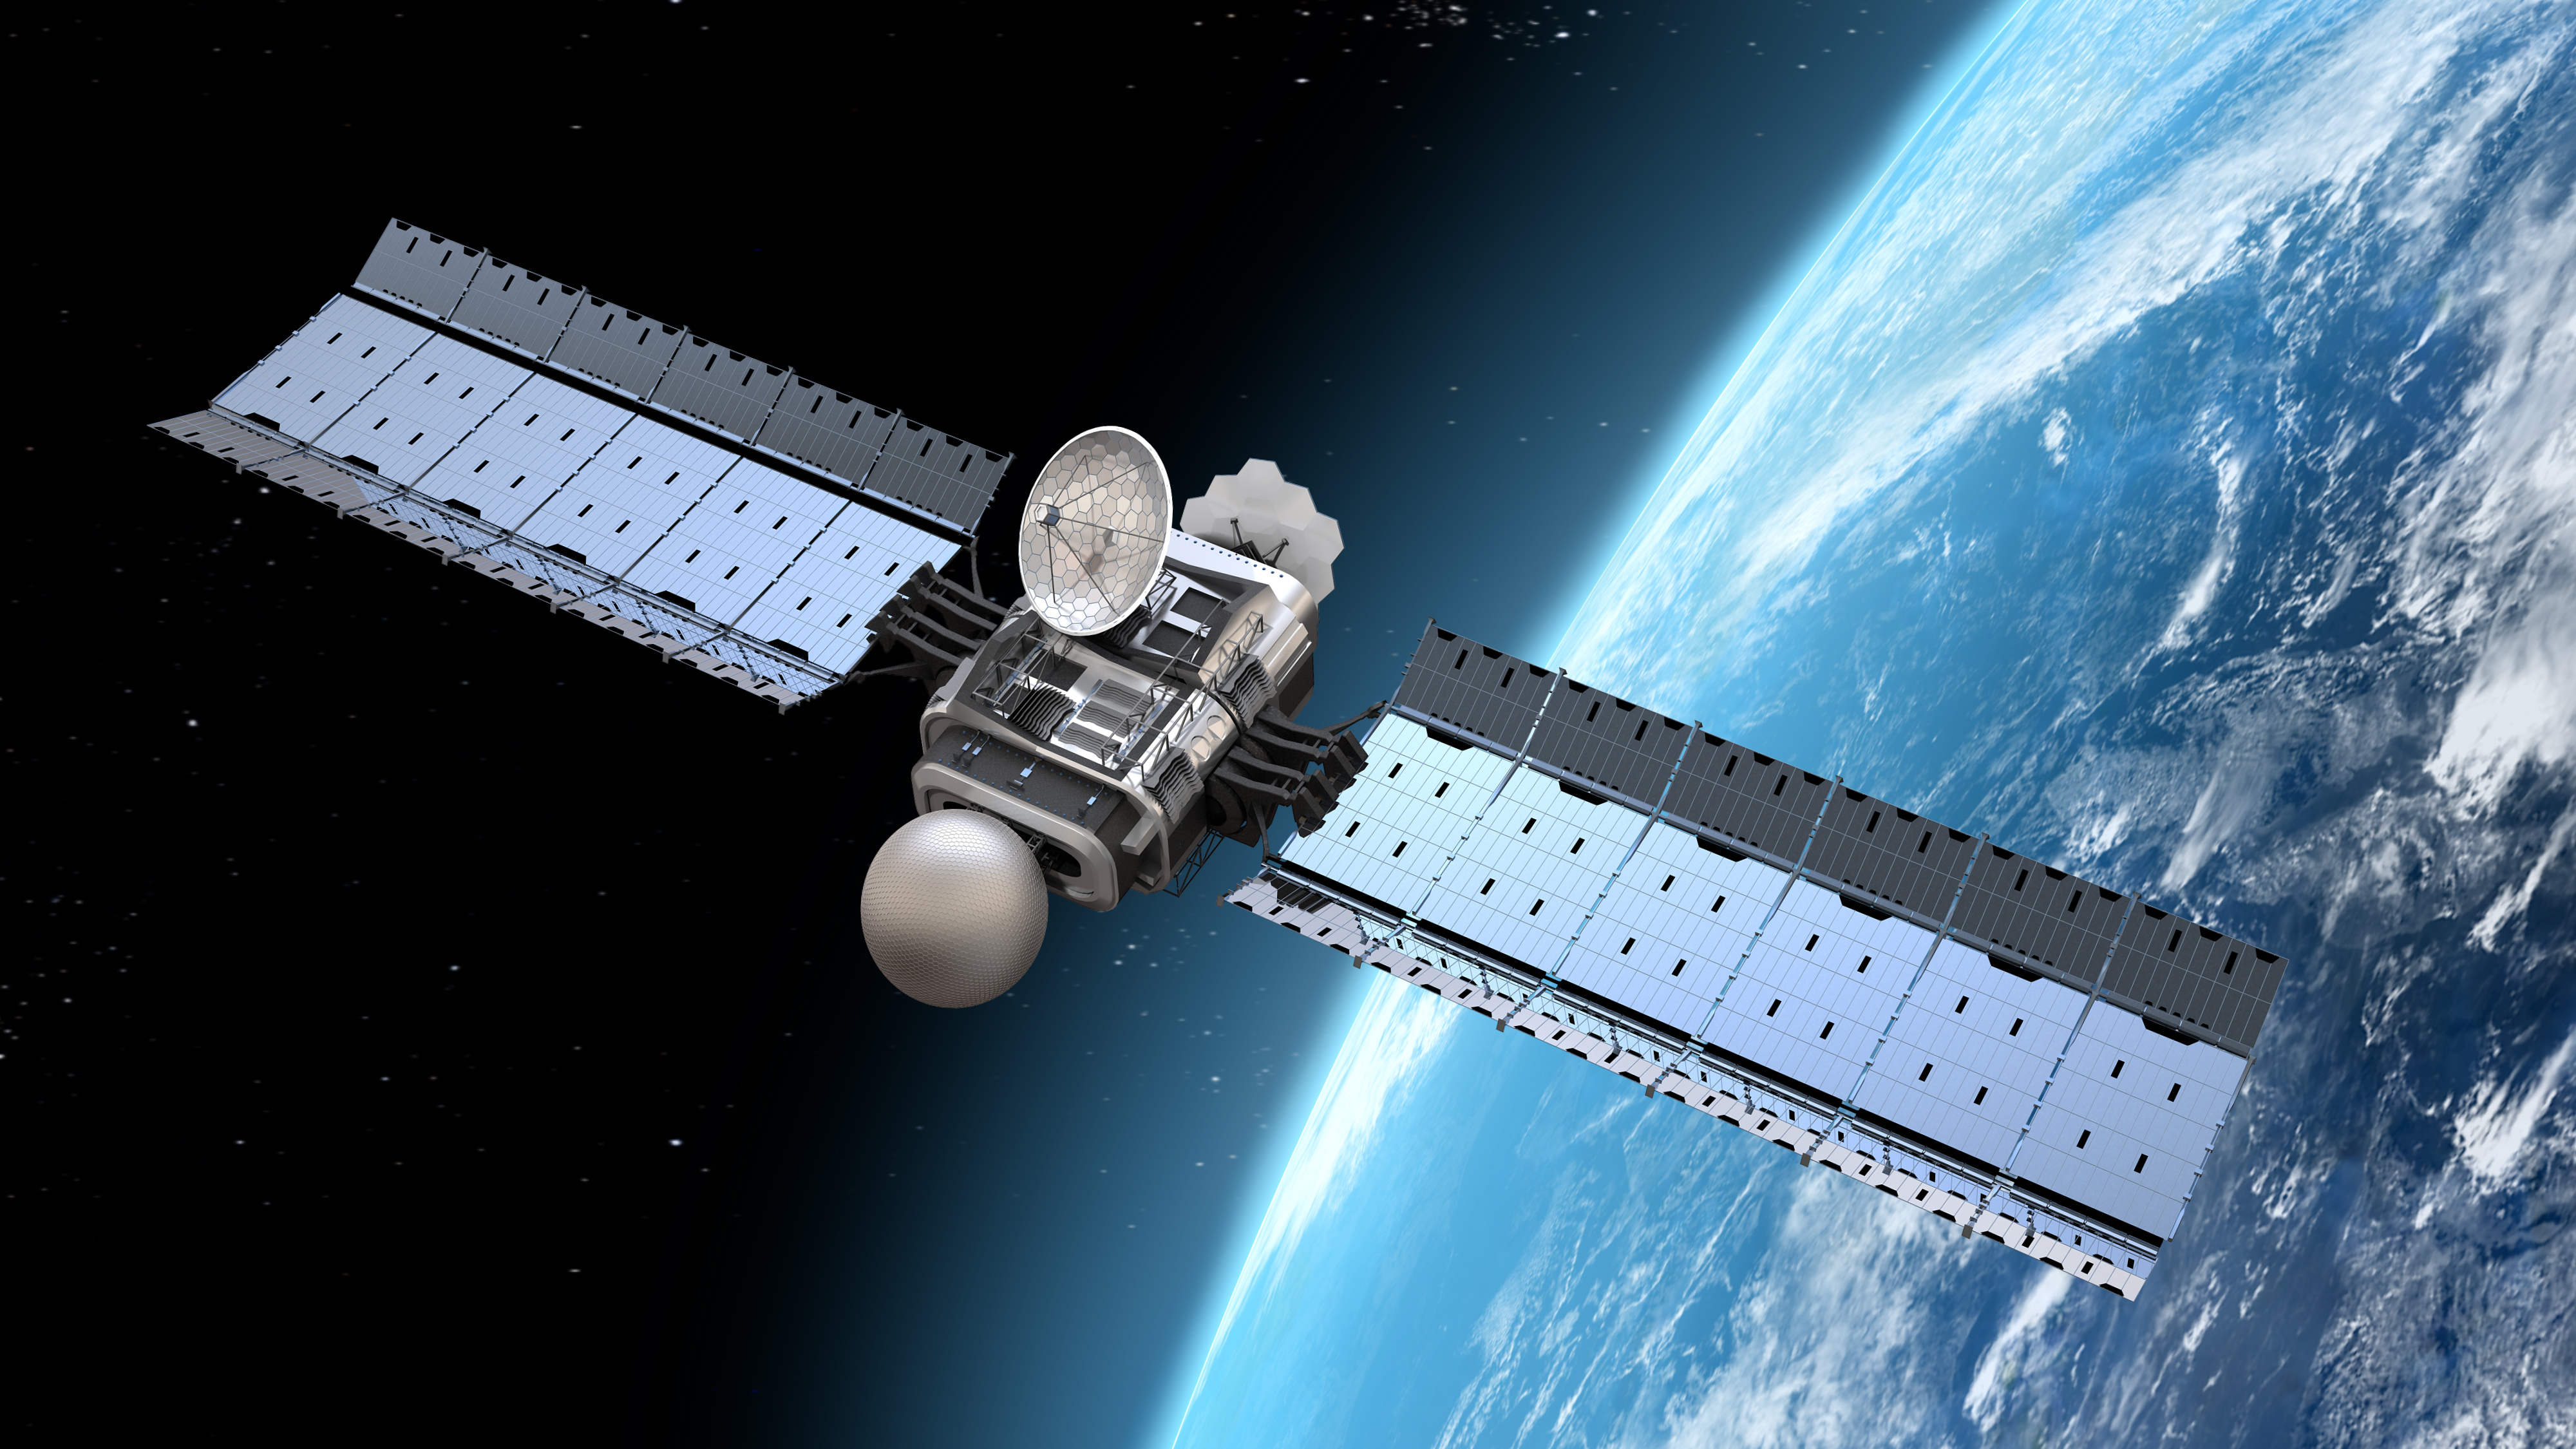 Imagine one of those providing enough bandwidth to allow merchant ships to operate without a crew. Imagine scaling that down to show-box size to allow a company to sell daily images of every spot on the earth. Image courtesy of Adobe Stock.